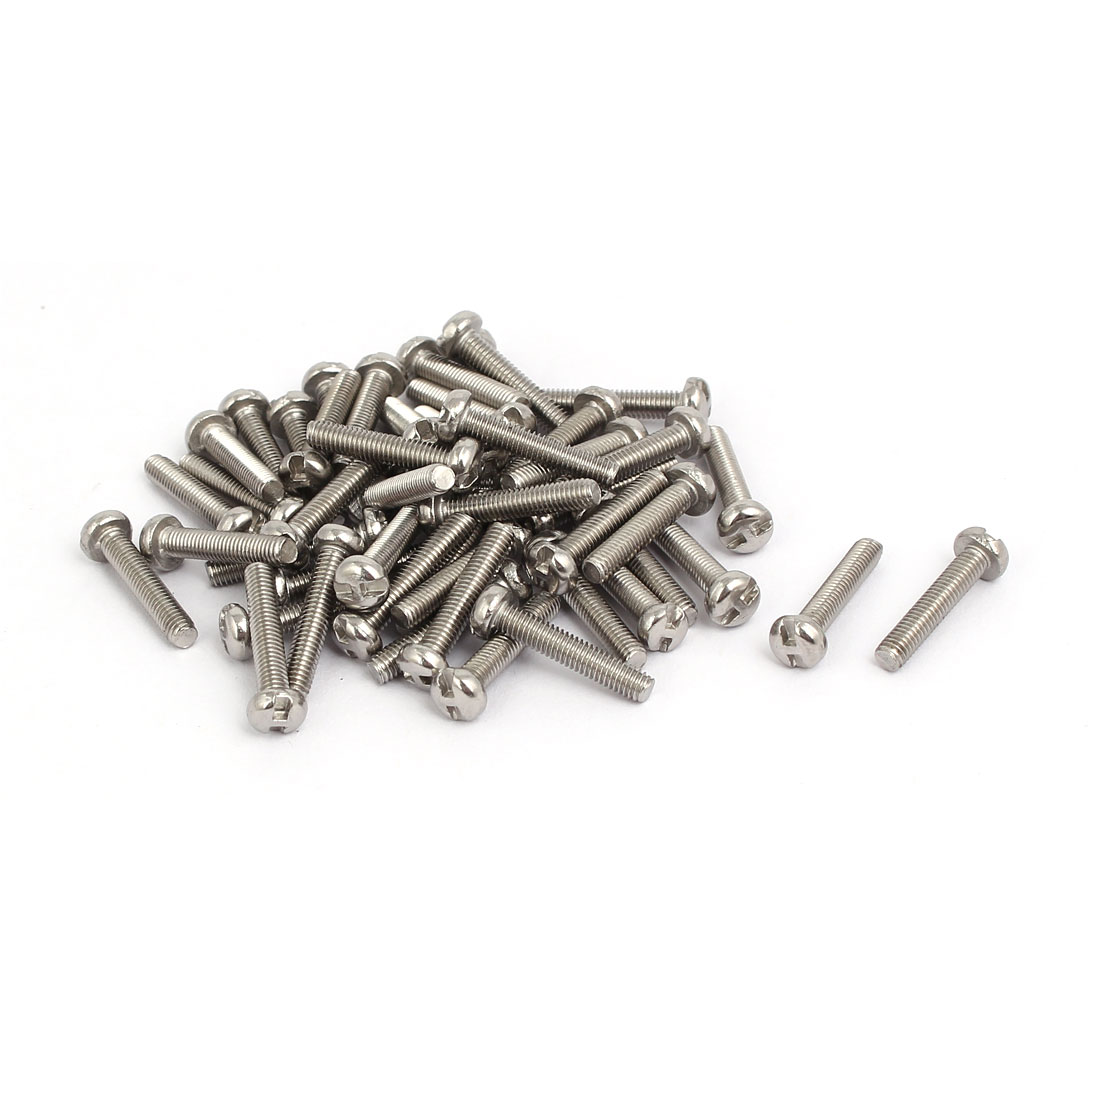 M3x16mm 304 Stainless Steel H-Type Drive Pan Head Tamper Proof Screws 50pcs